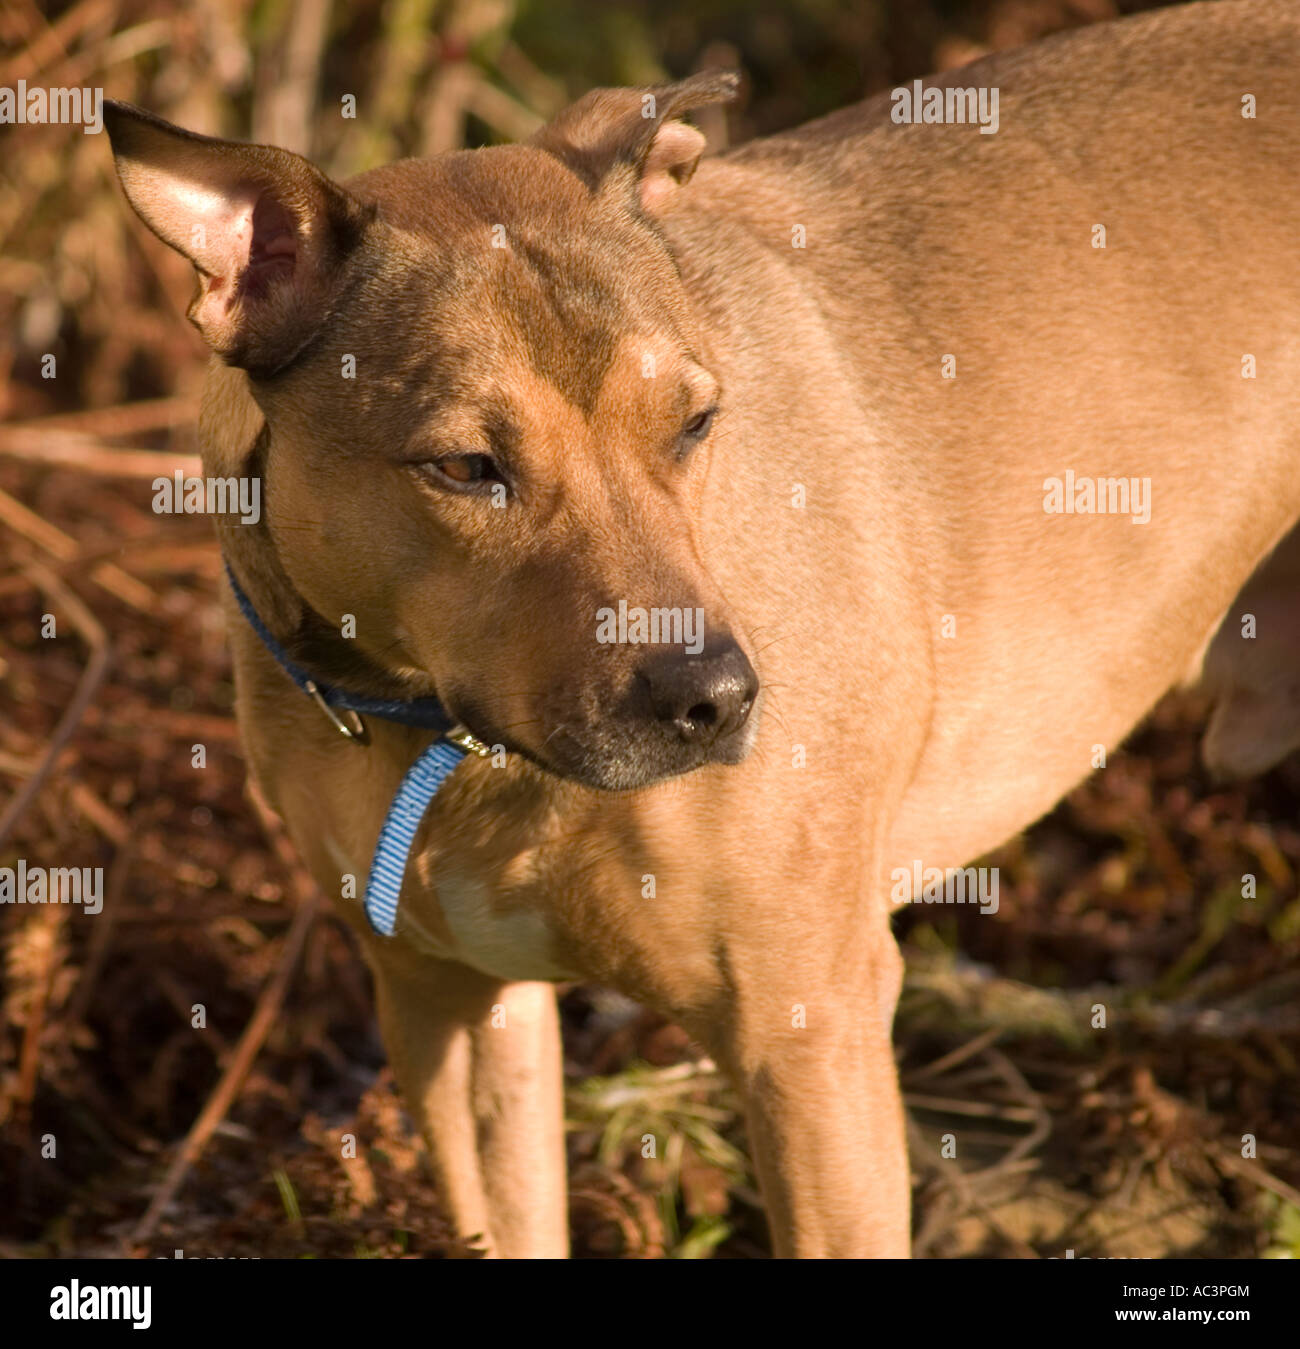 A Brown Staffordshire Bull Terrier Cross Male Dog - Stock Image